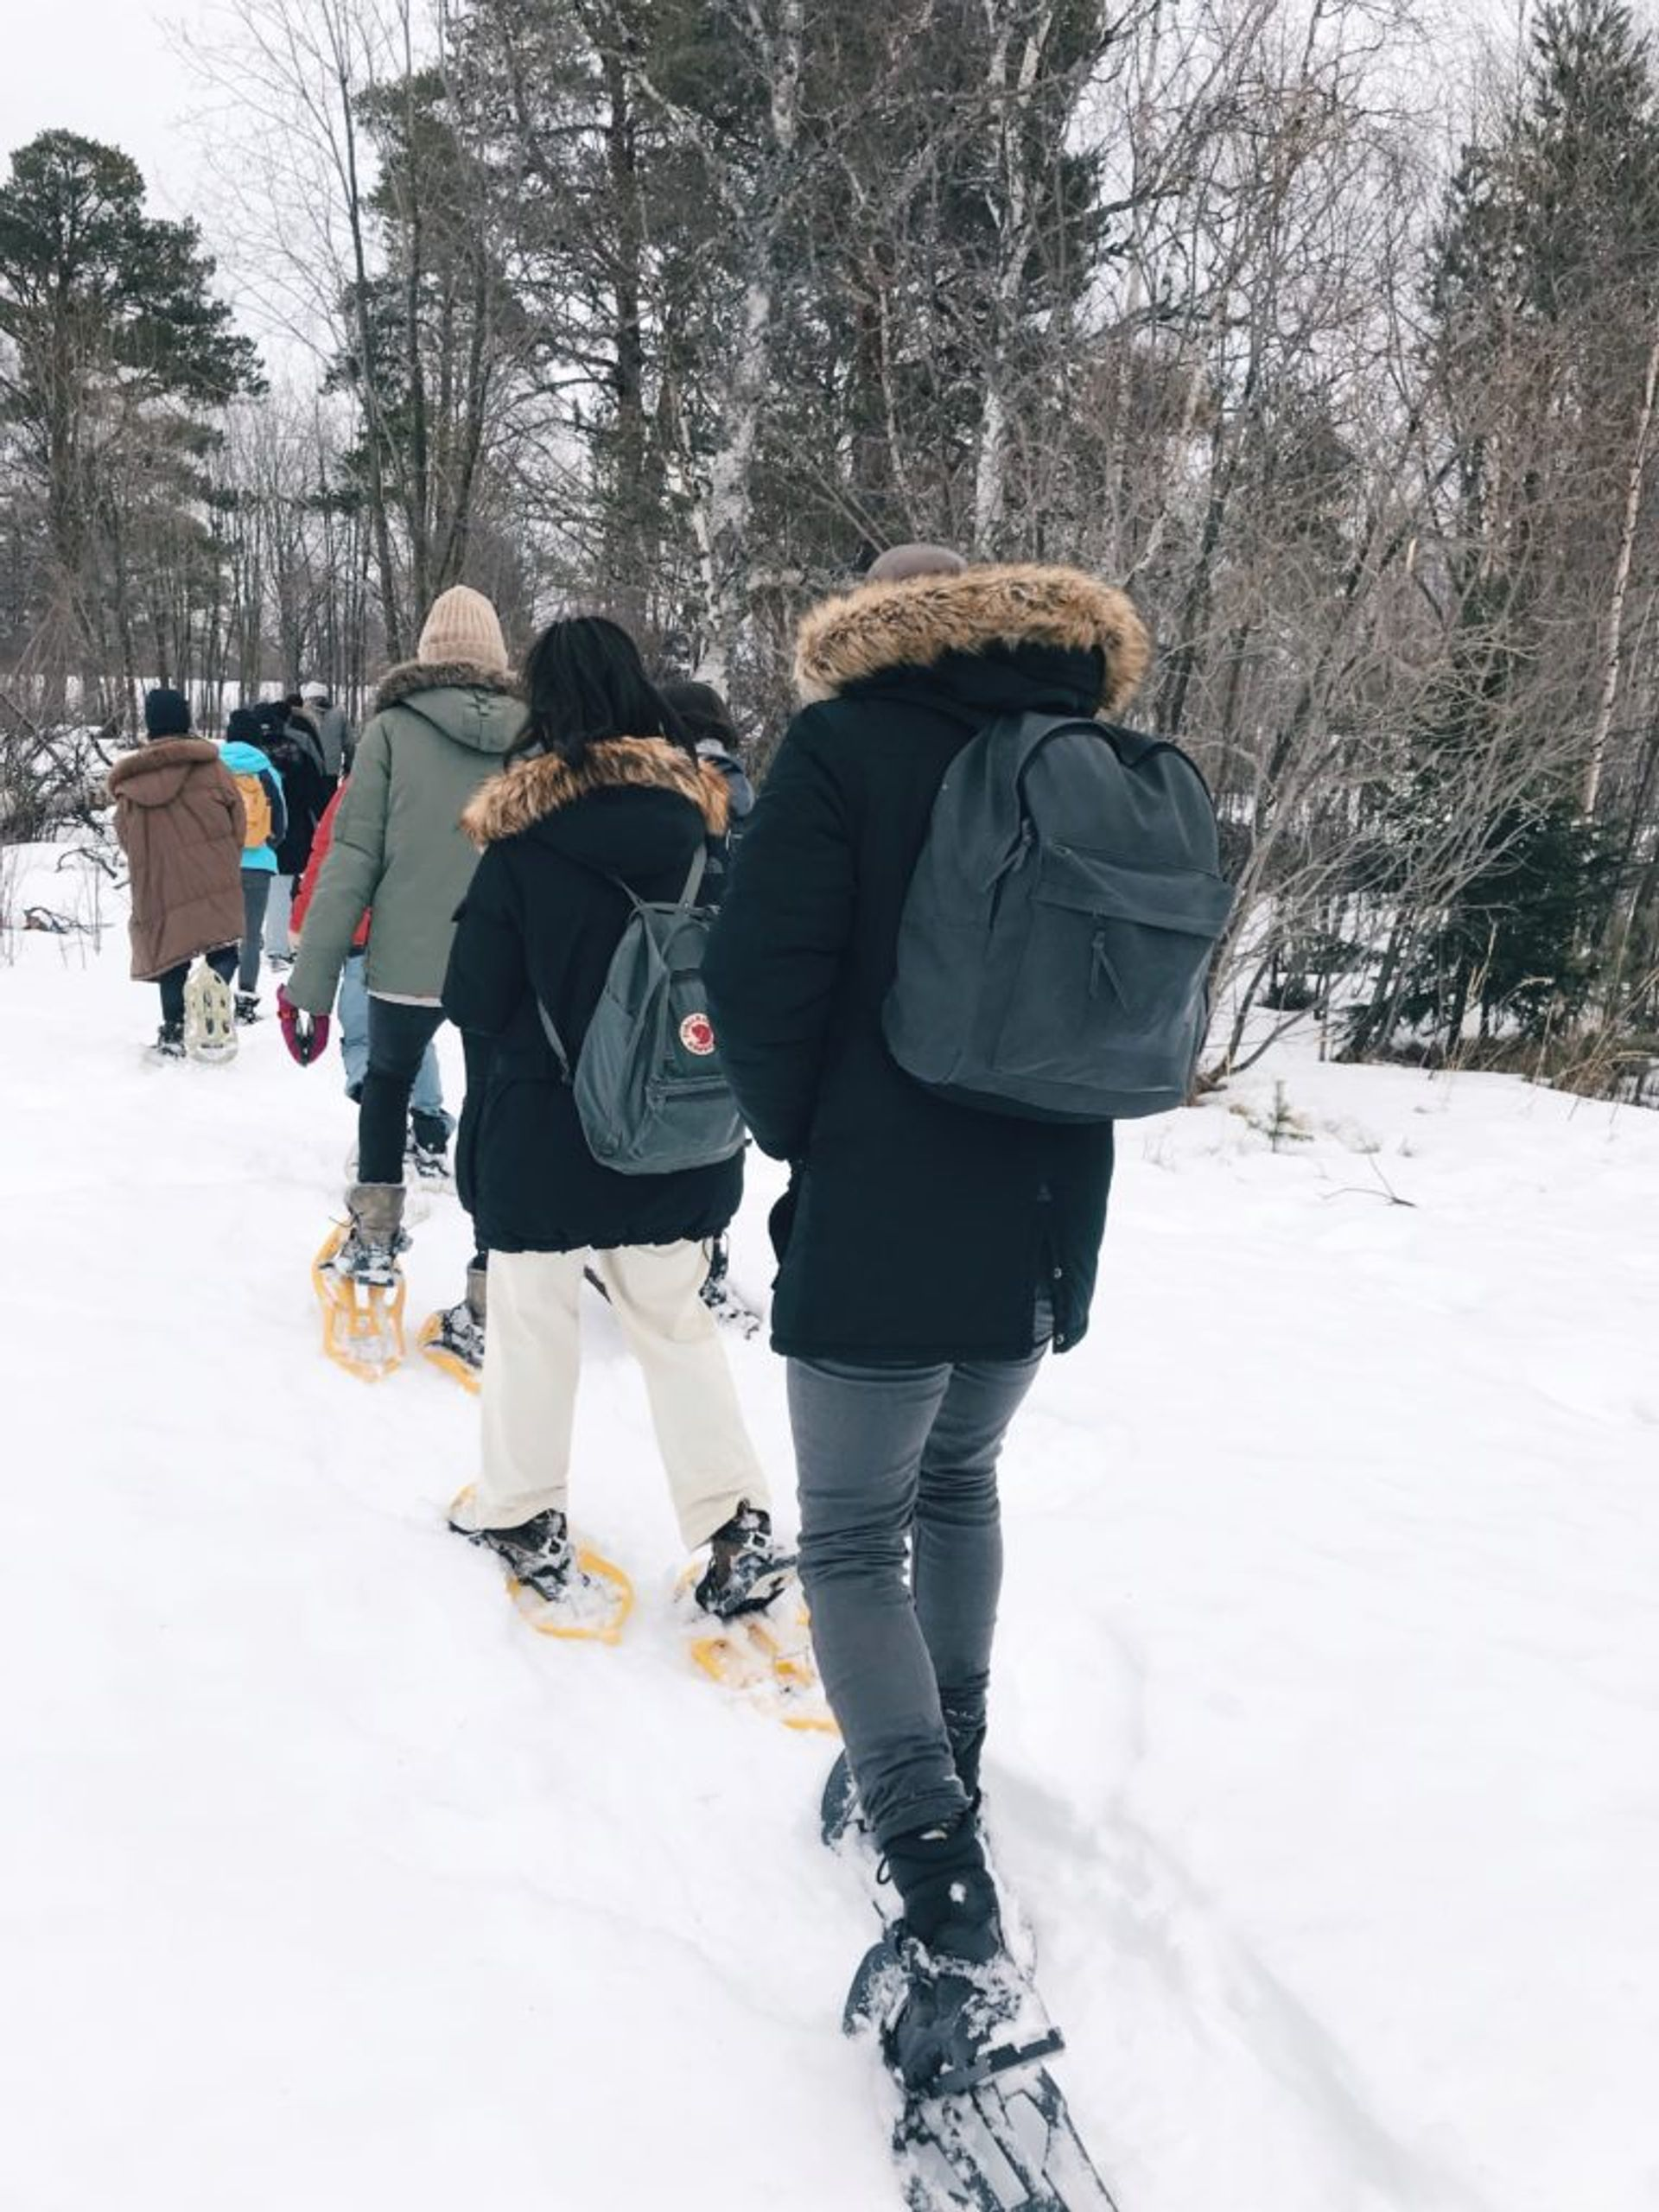 A group of students wearing winter clothing and snowshoes walking in a snowy forrest.